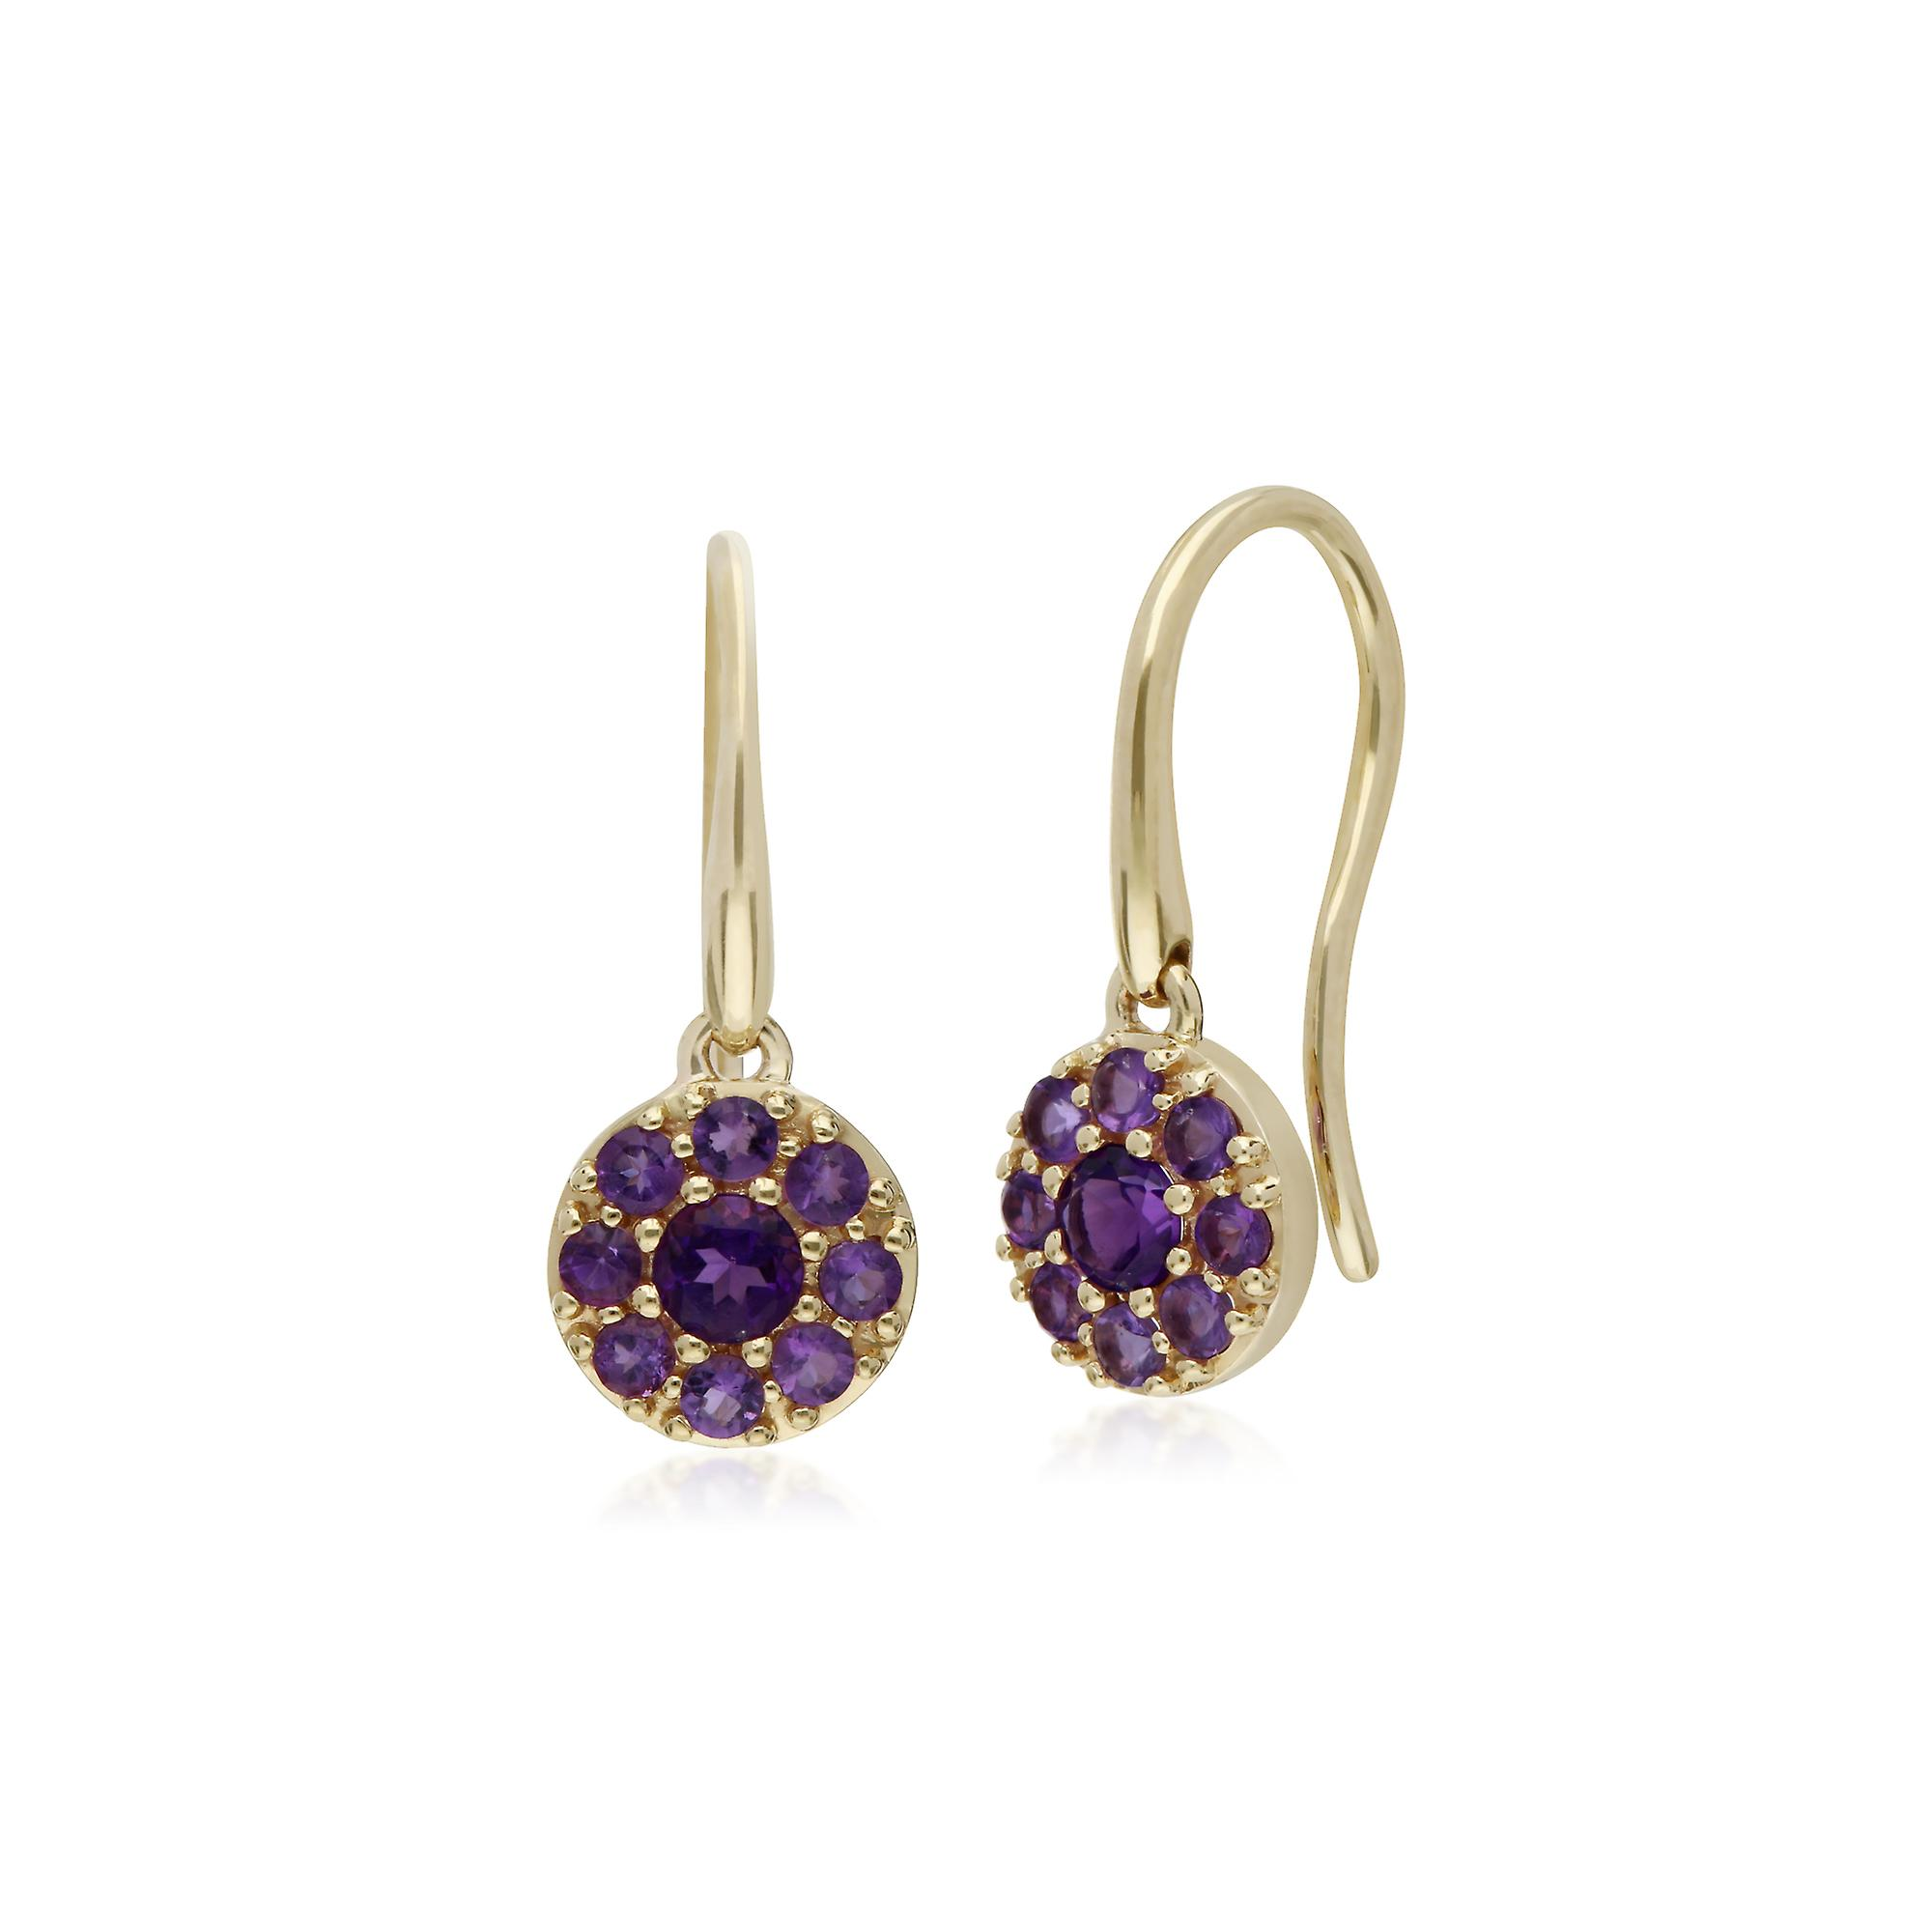 Gemondo 9ct Yellow Gold Amethyst Round Cluster Drop Earrings